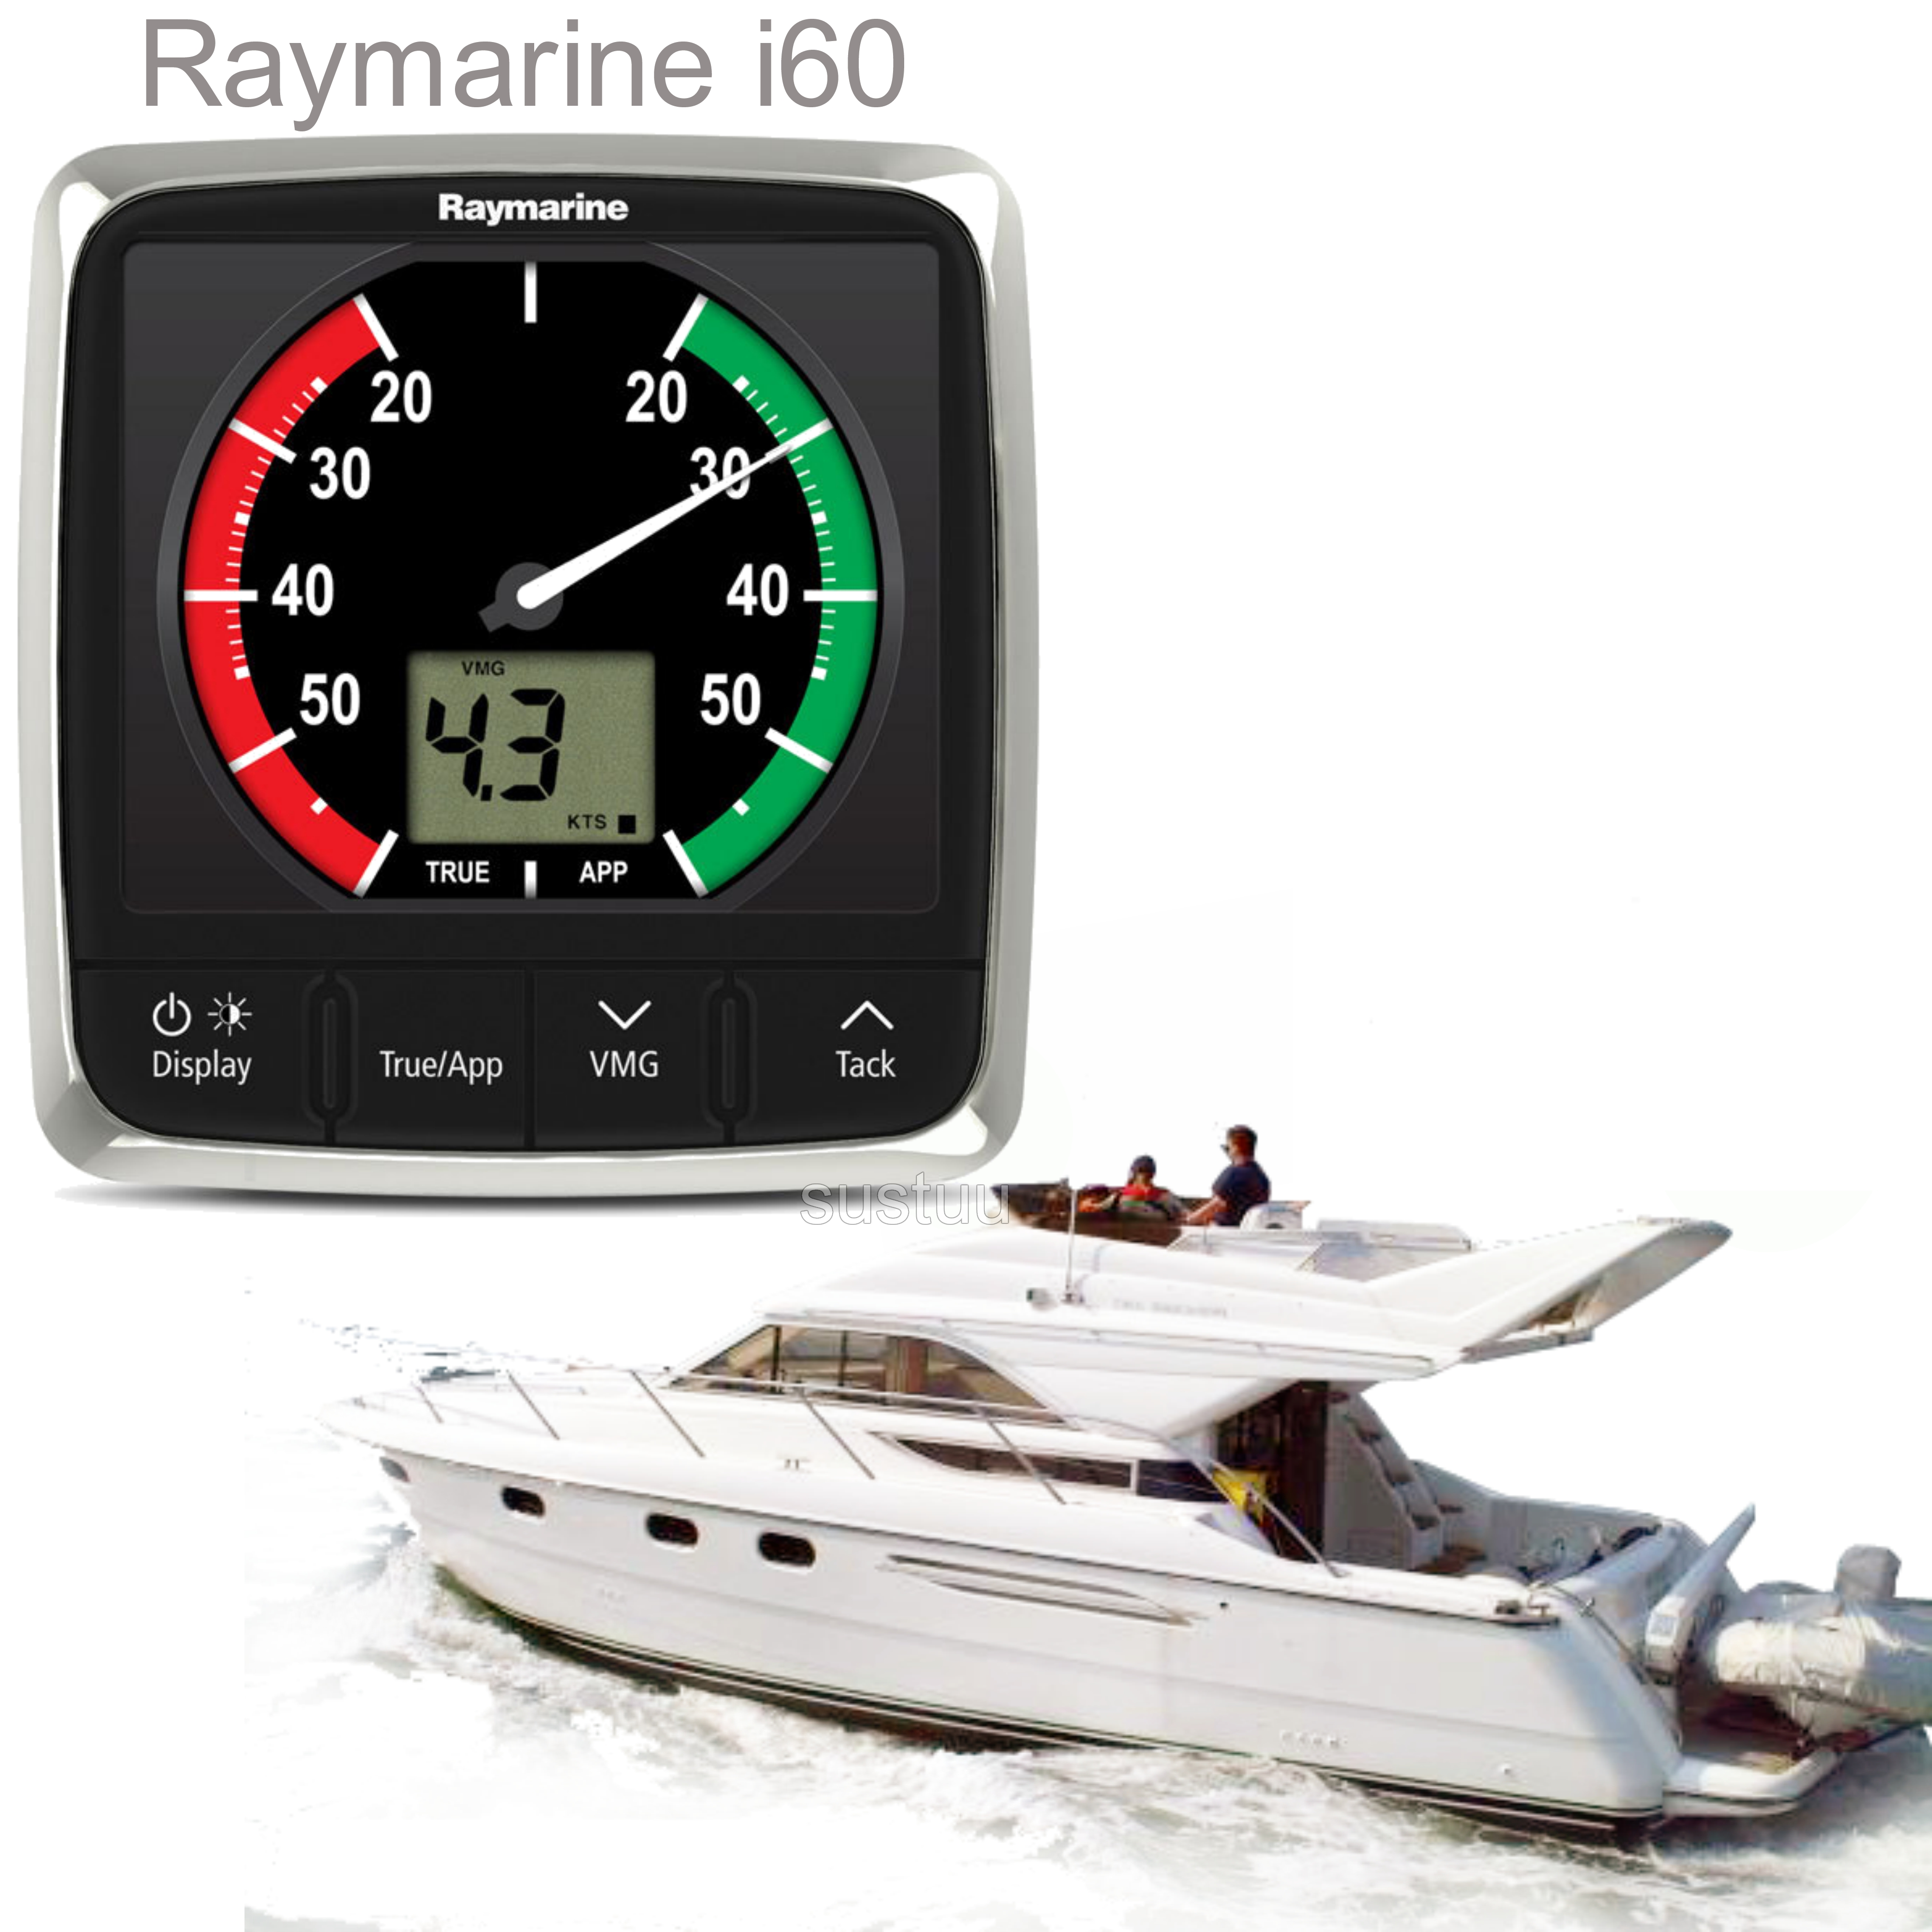 Raymarine E70062|i60 Close Hauled Wind Instrument Display|Analogue|For Sailboaters